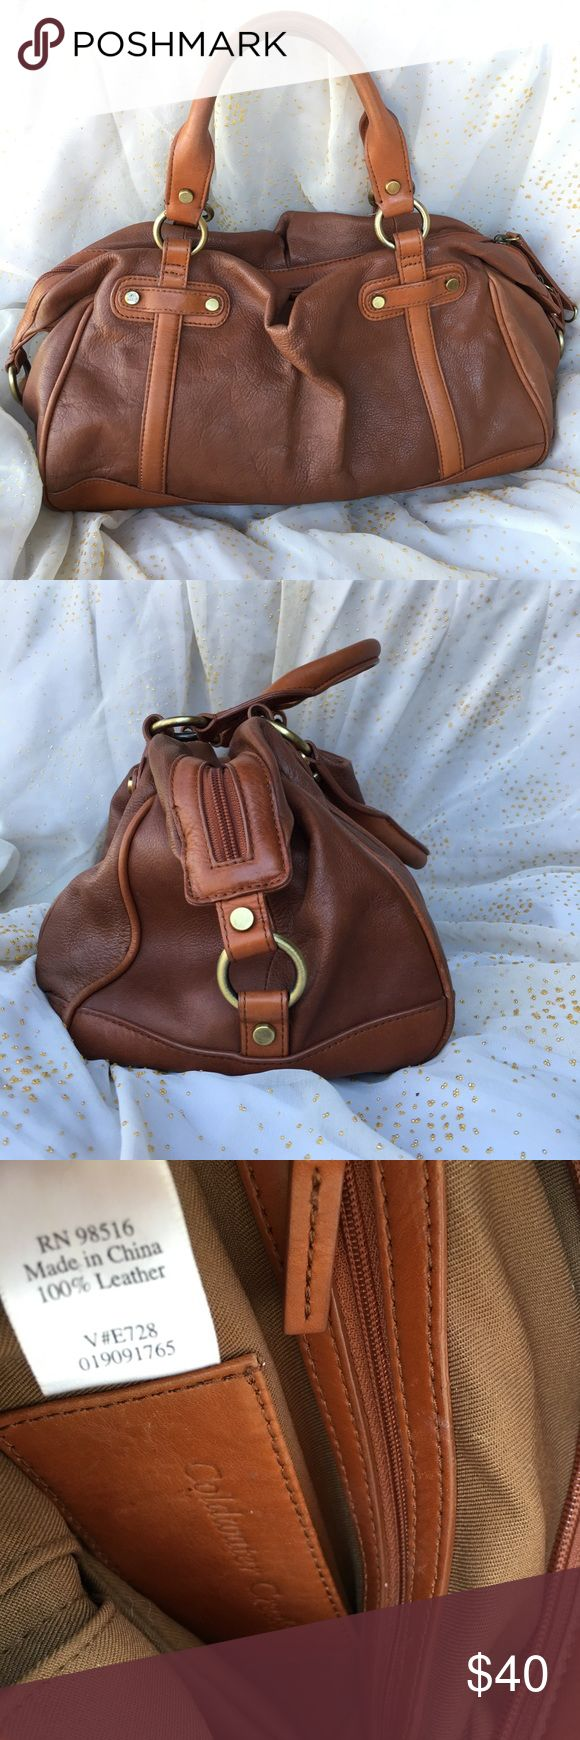 ColdWater Creek All Leather Tote ColdWater Creek All Leather Tote Excellent Condition Fully leather trimmed Great wardrobe staple item. Dimensions 14x8hx7w Coldwater Creek Bags Totes